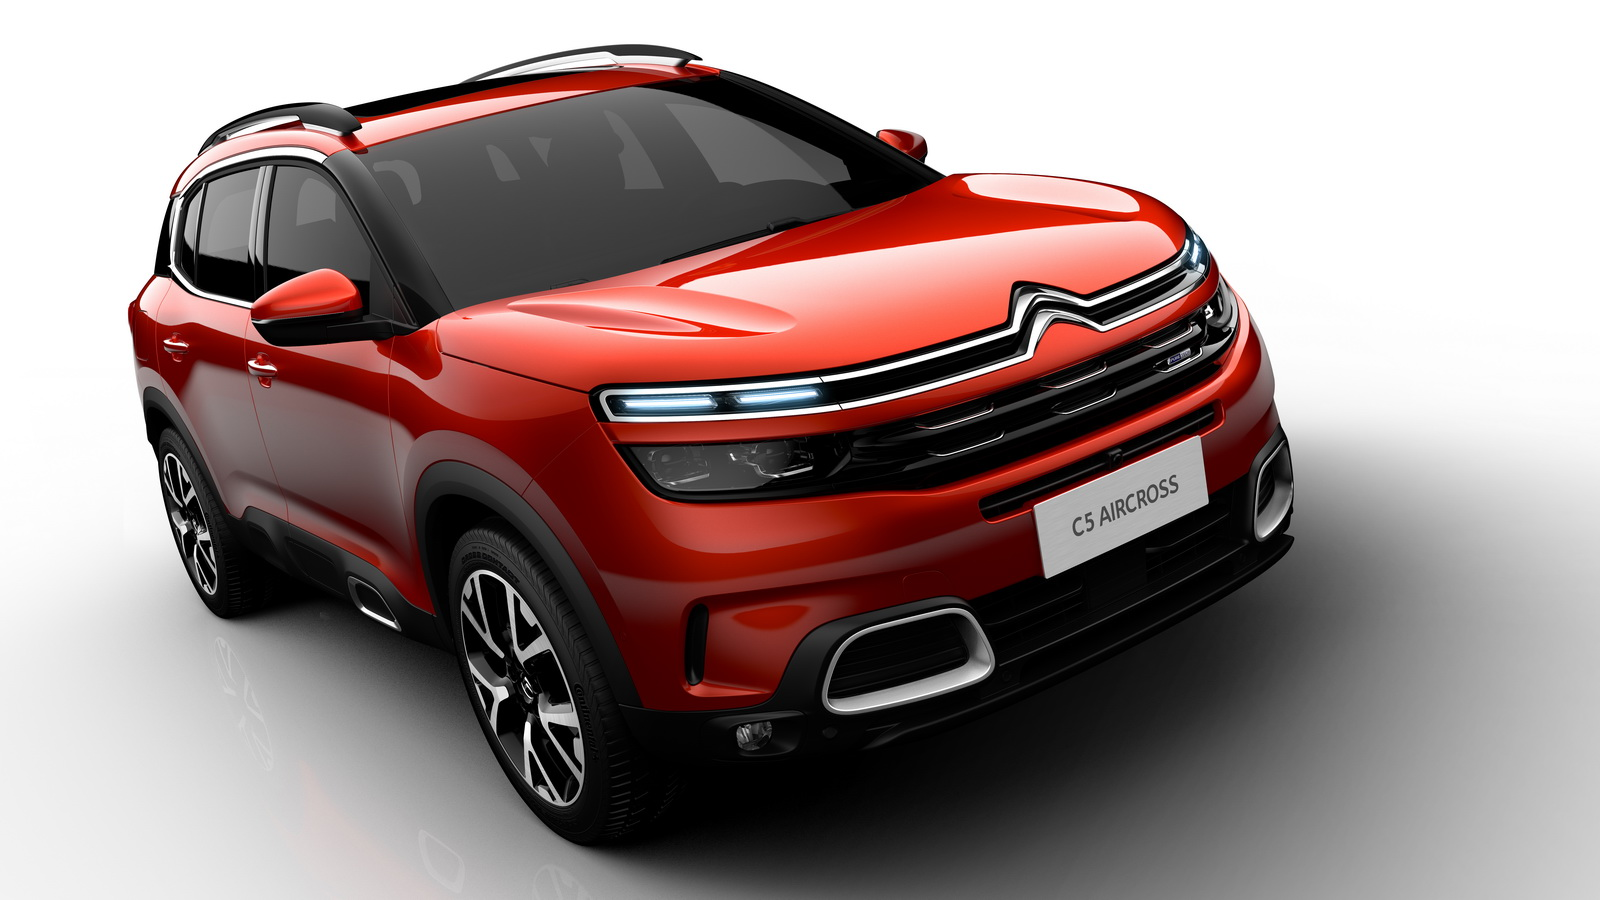 Citroen C5 Aircross >> 2018 Citroen C5 Aircross Officially Revealed, Gets Innovative Hydraulic Suspension | Carscoops